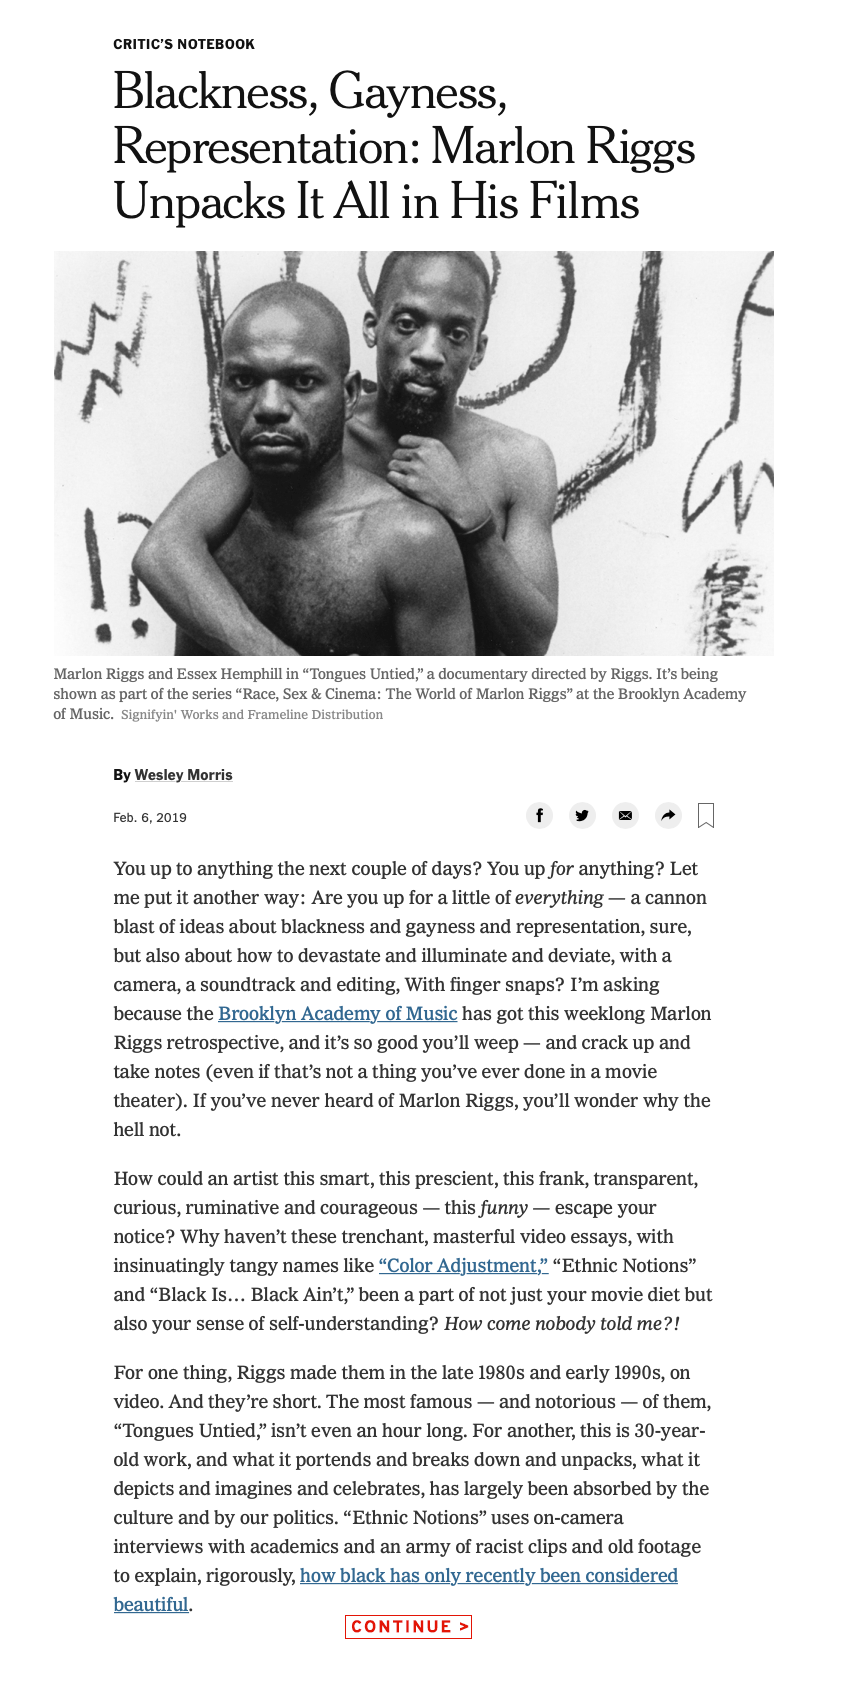 """Blackness, Gayness, Representation: Marlon Riggs Unpacks It All in His Films ... For one thing, Riggs made them in the late 1980s and early 1990s, on video. And they're short. The most famous — and notorious — of them, """"Tongues Untied,"""" isn't even an hour long. For another, this is 30-year-old work, and what it portends and breaks down and unpacks, what it depicts and imagines and celebrates, has largely been absorbed by the culture and by our politics. """"Ethnic Notions"""" uses on-camera interviews with academics and an army of racist clips and old footage to explain, rigorously, how black has only recently been considered beautiful..."""